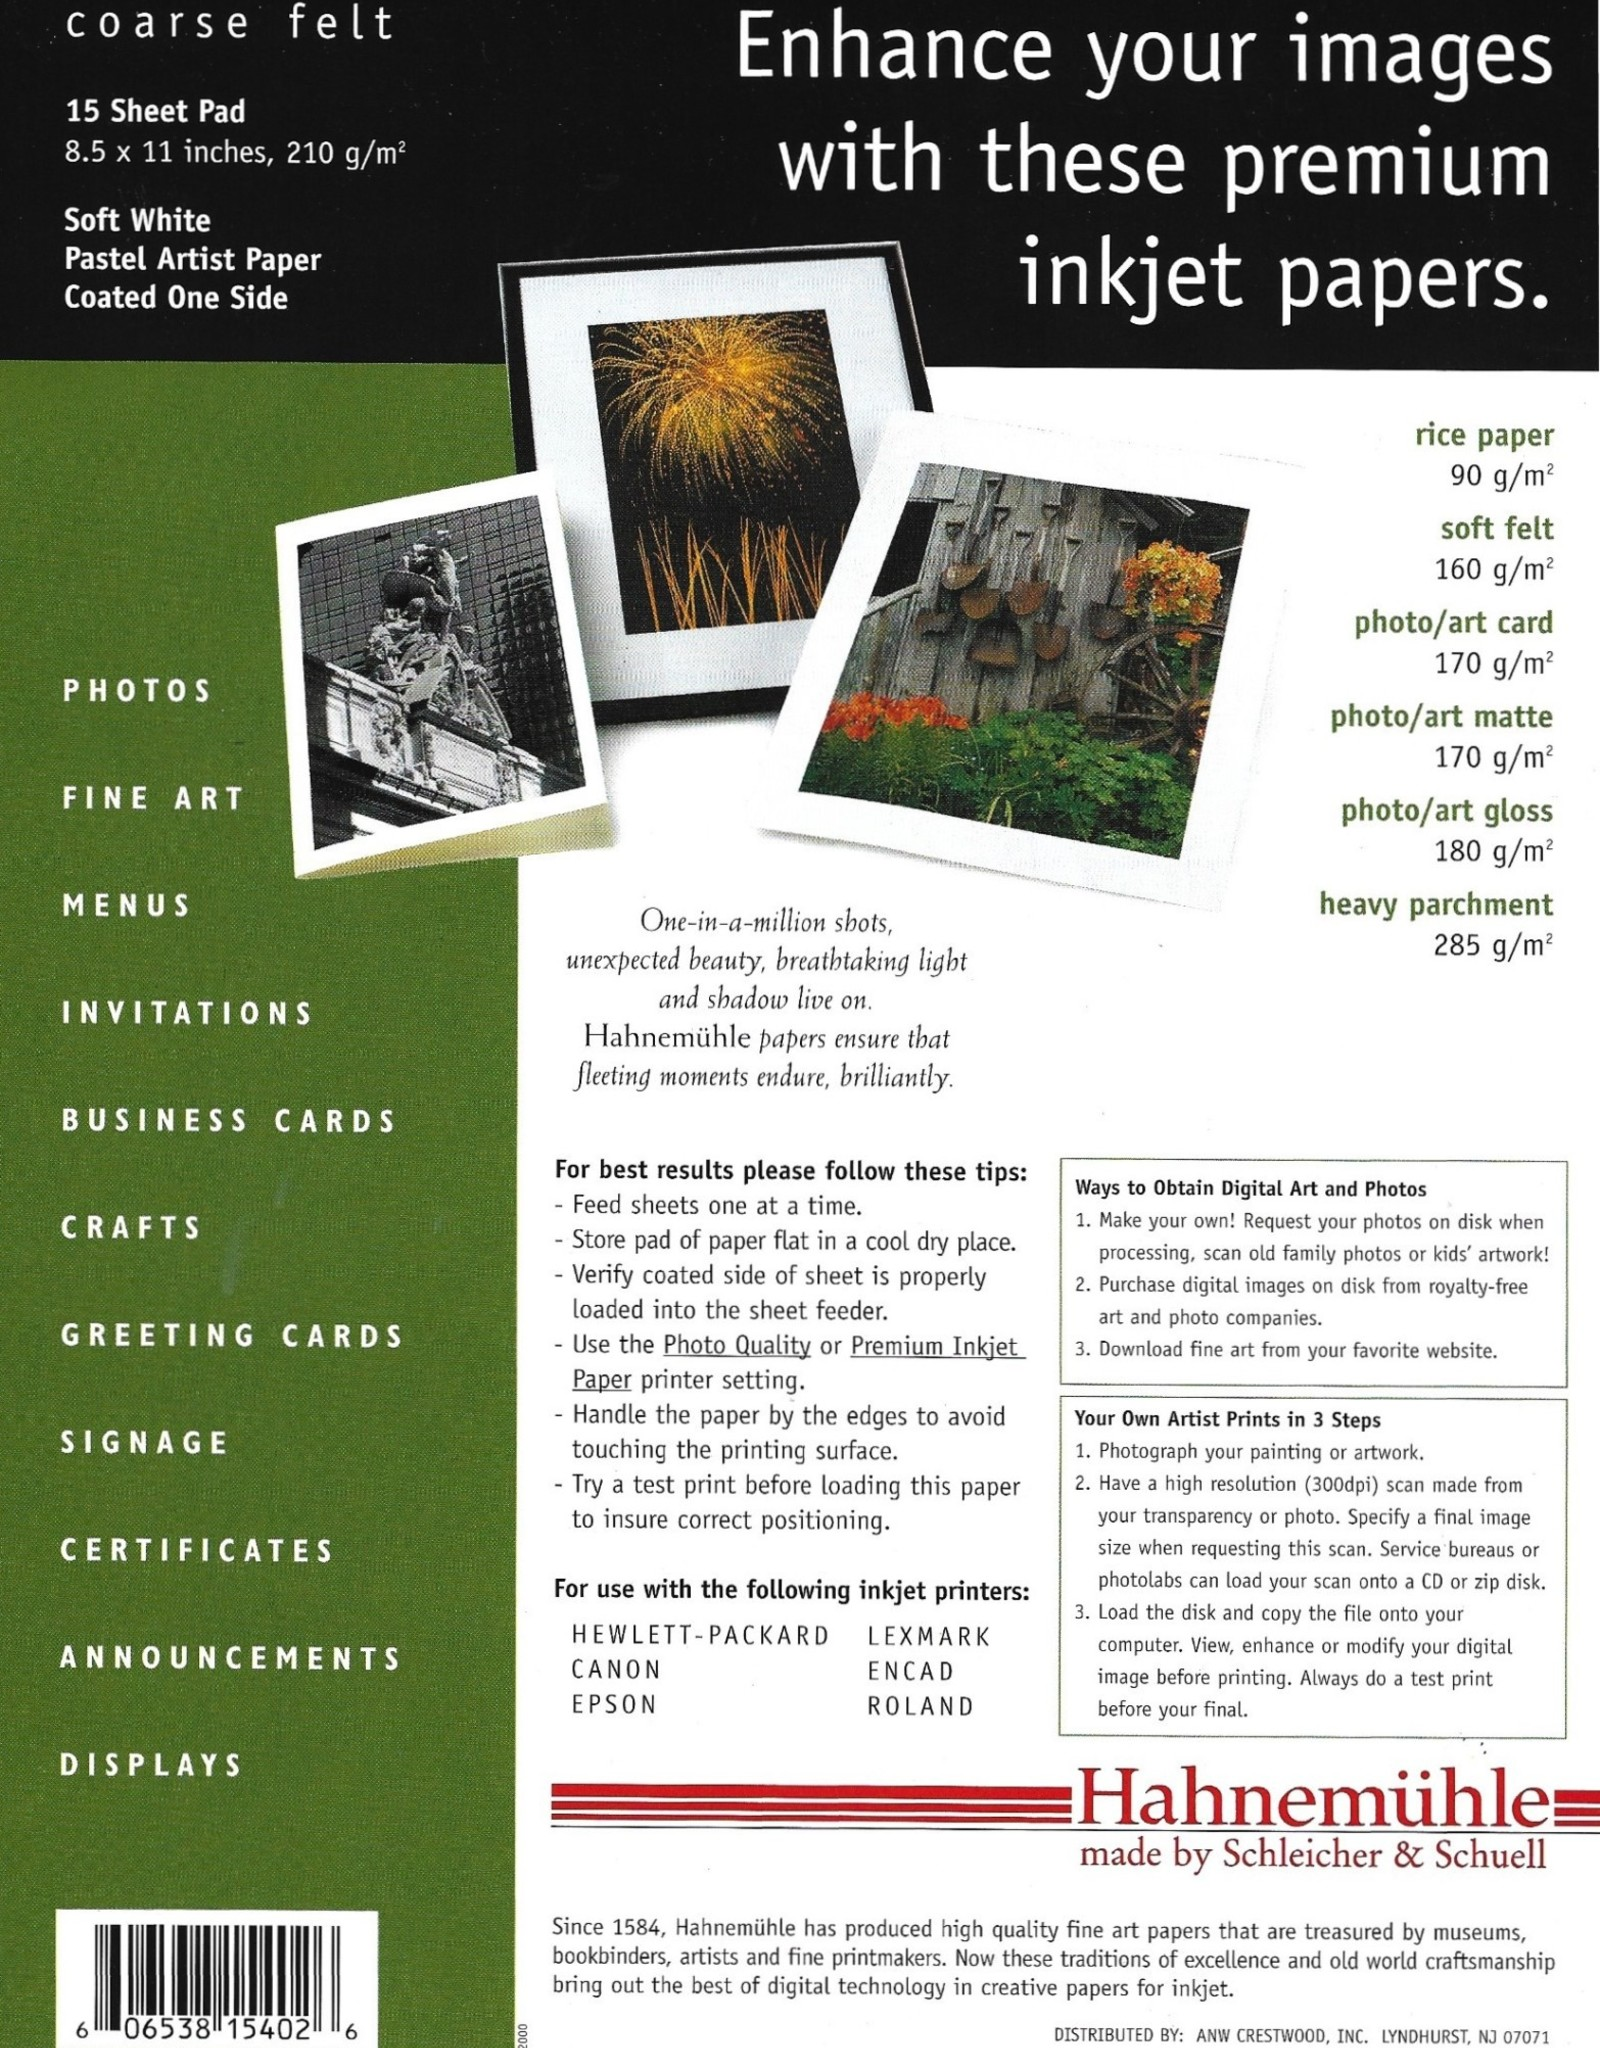 "Hahnemuhle Creative Papers for Inkjet, Soft White, Coarse Felt, 8.5"" x 11"", 210 gsm, 15 Sheet Pad"